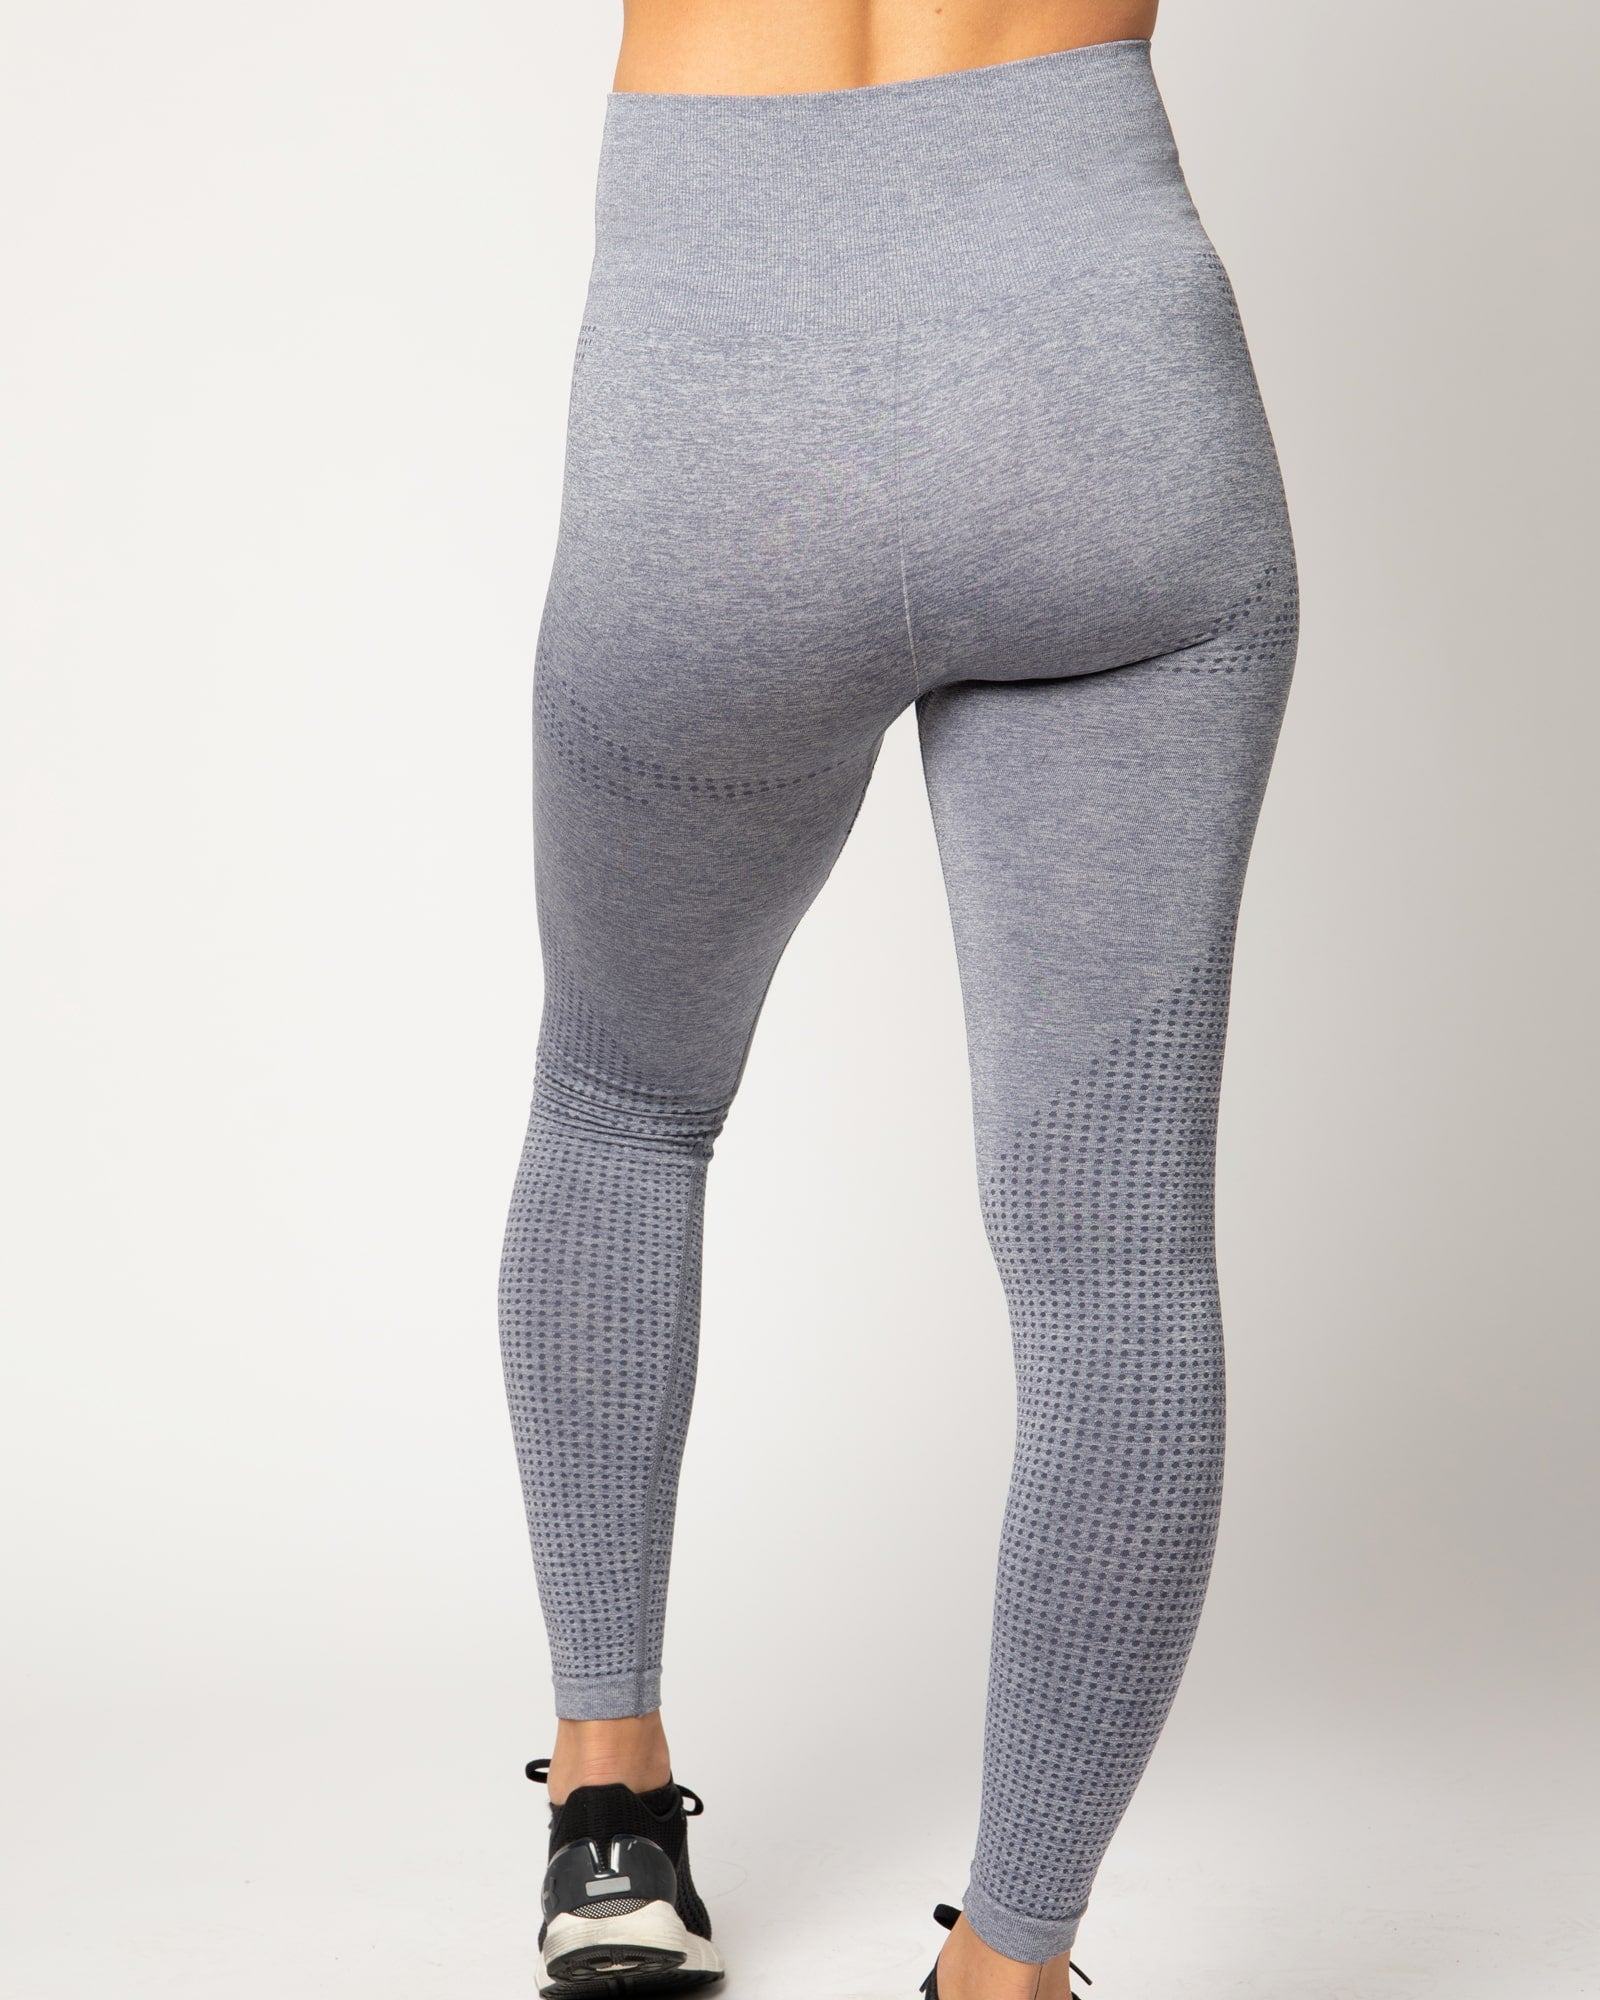 True Seamless Gray High Waisted Leggings